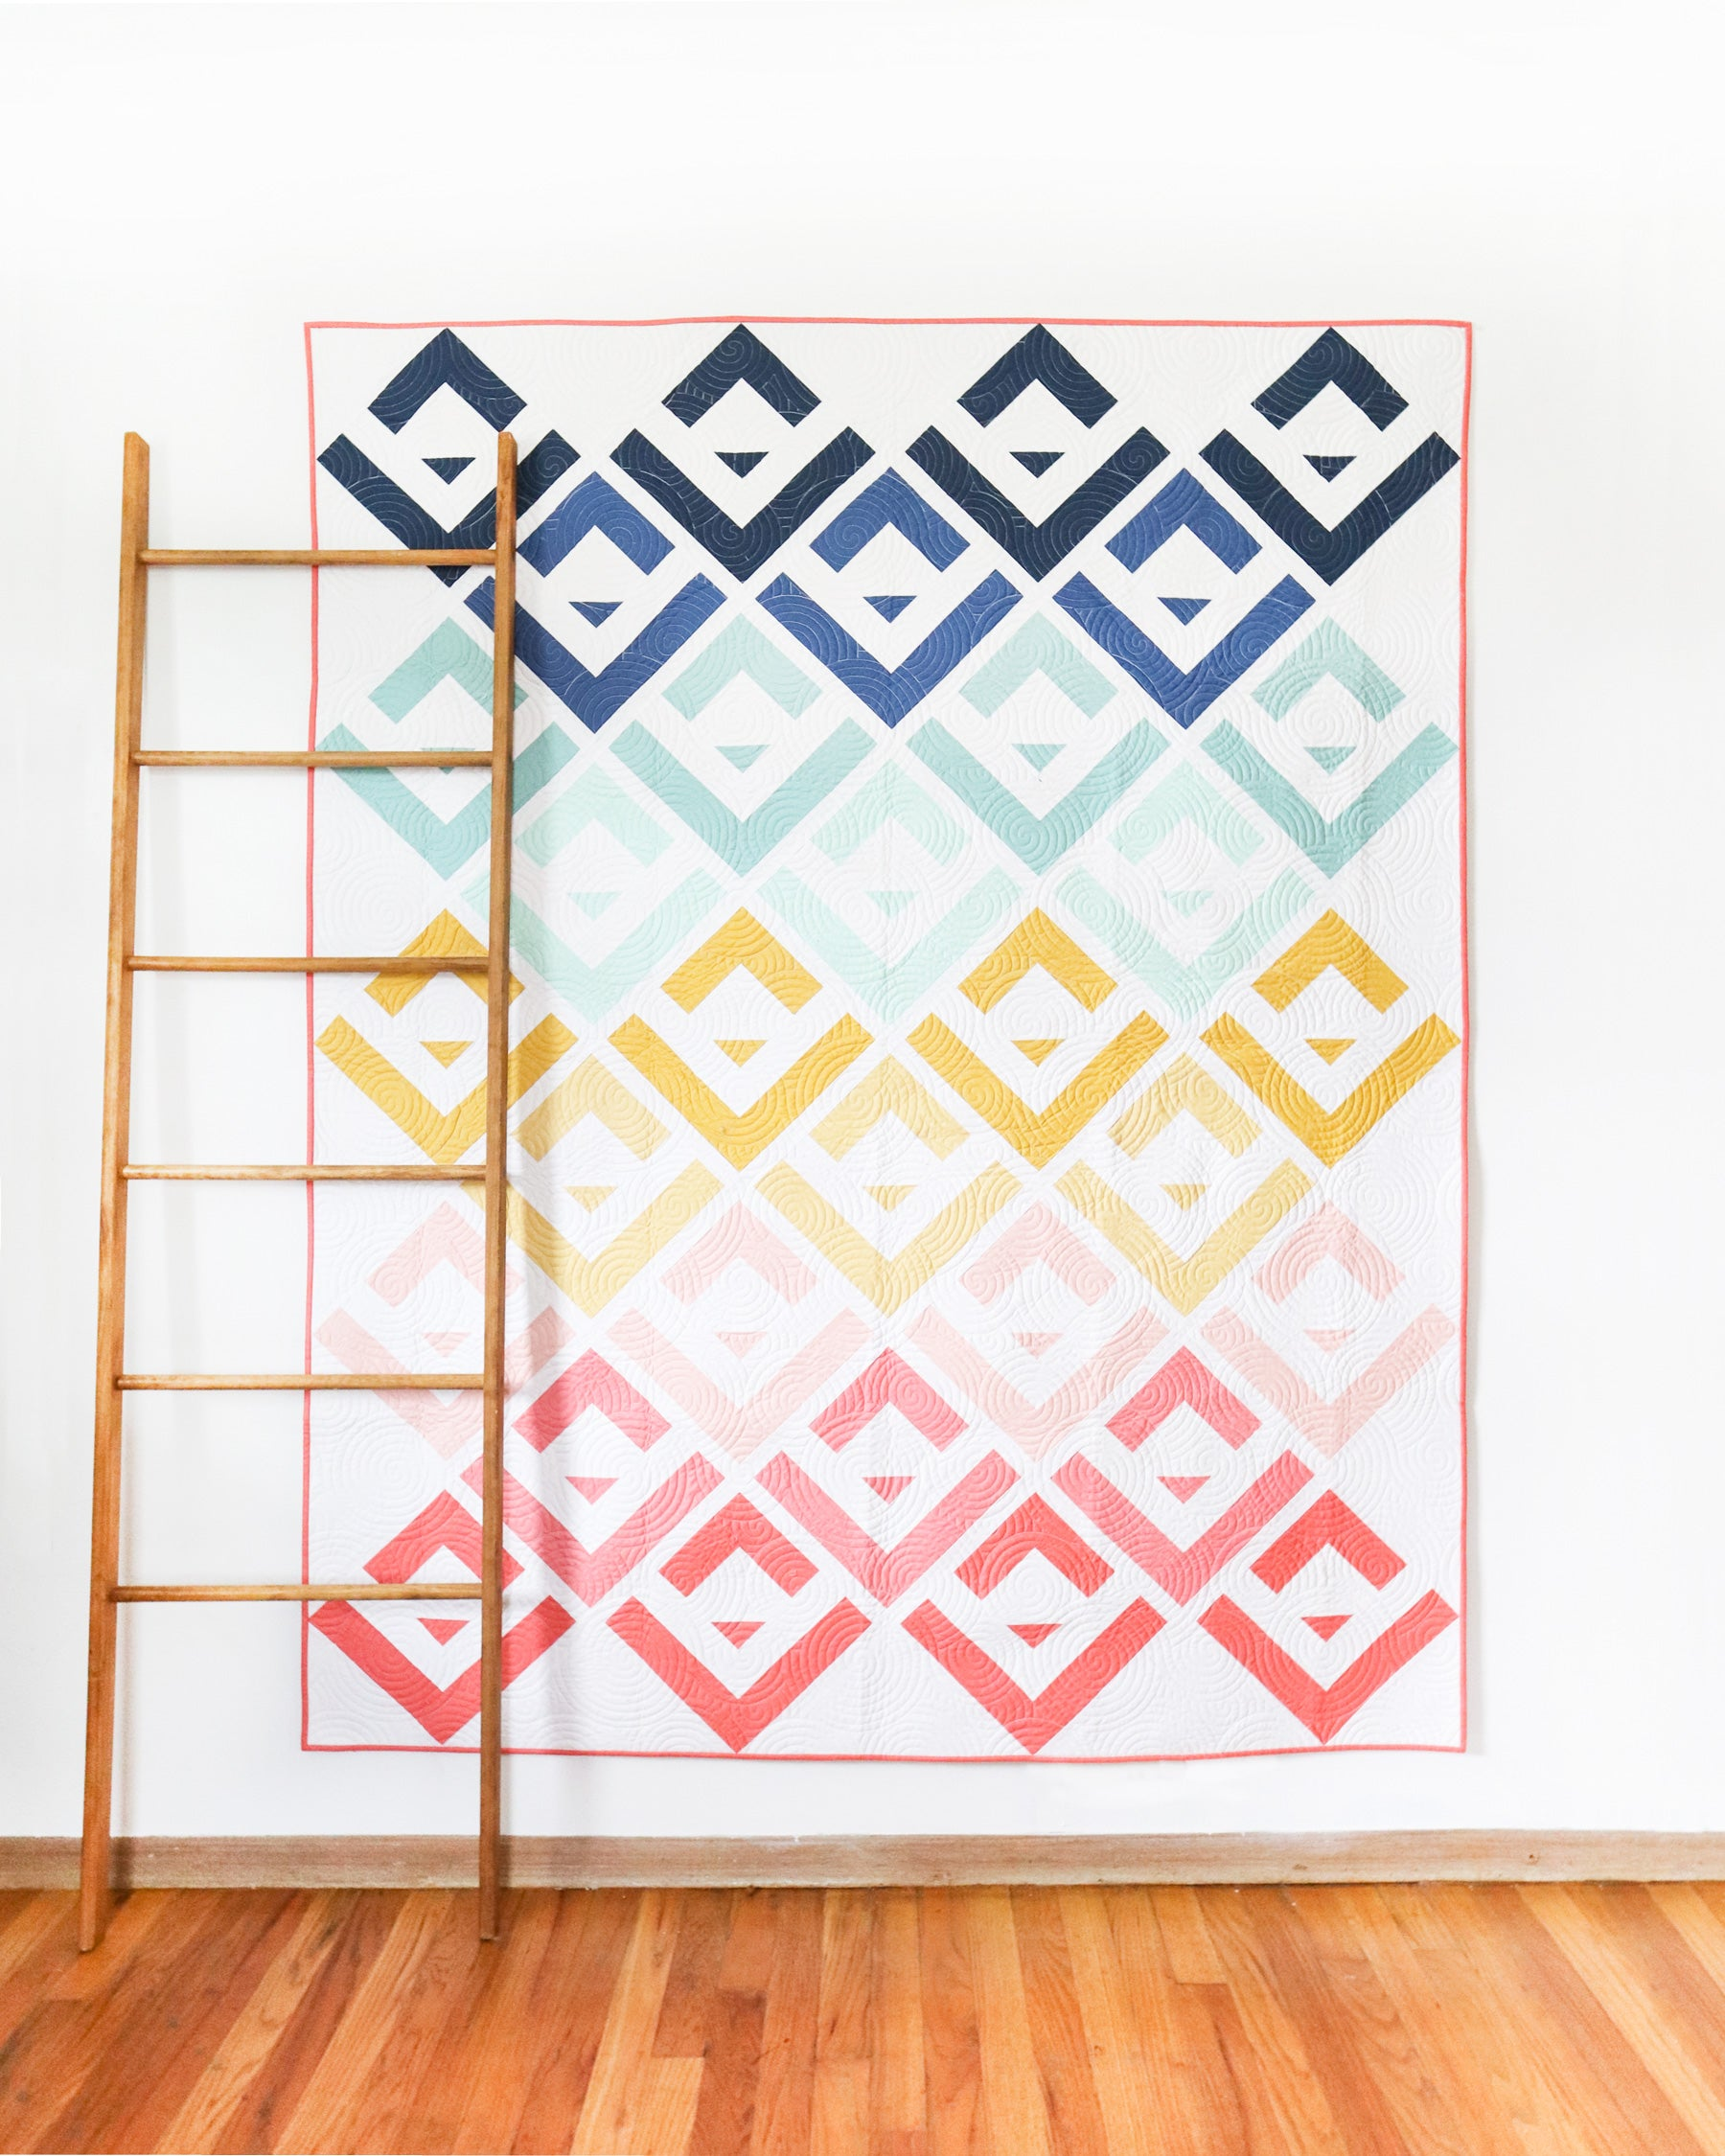 Cabin Valley quilt pattern - a modern log cabin quilt by Cotton and Joy